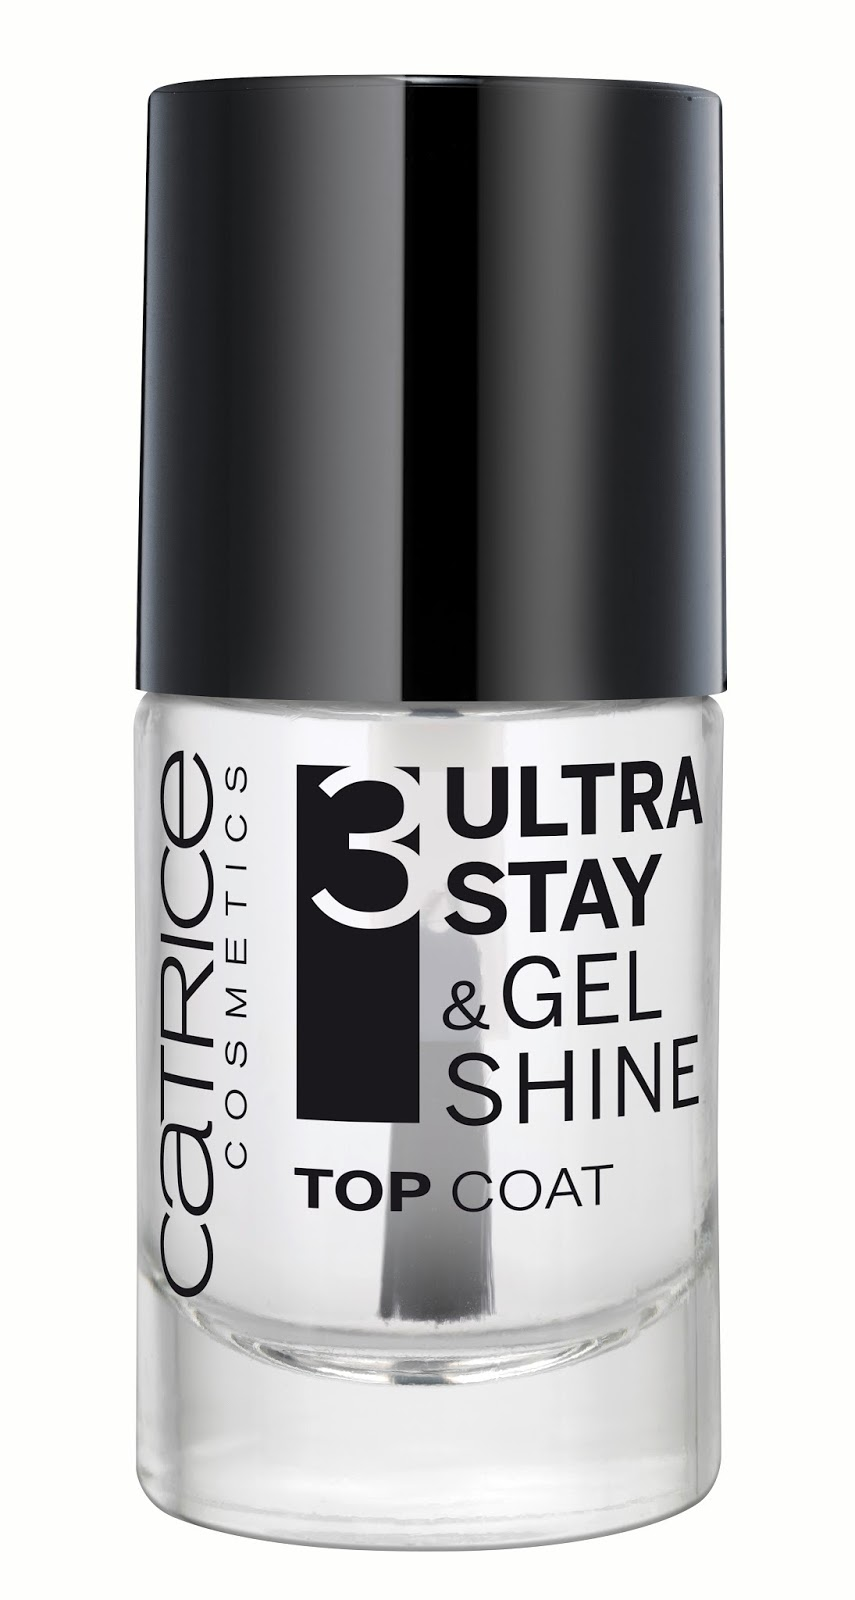 Catricce - Ultra Stay & Gel Shine Top Coat